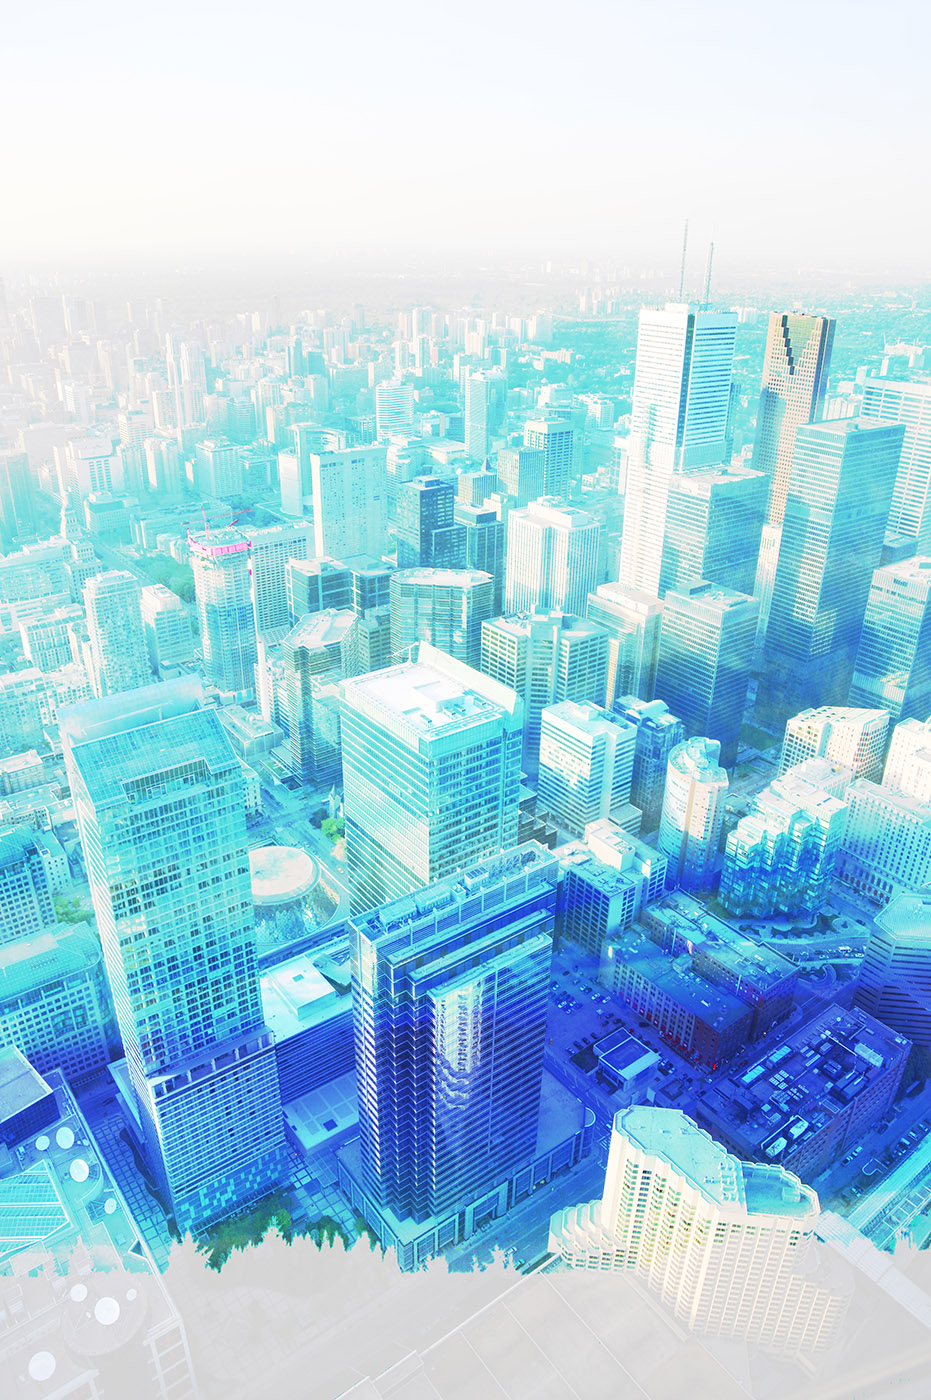 Urban Vertical Cityscape - Royalty-Free Stock Imagery